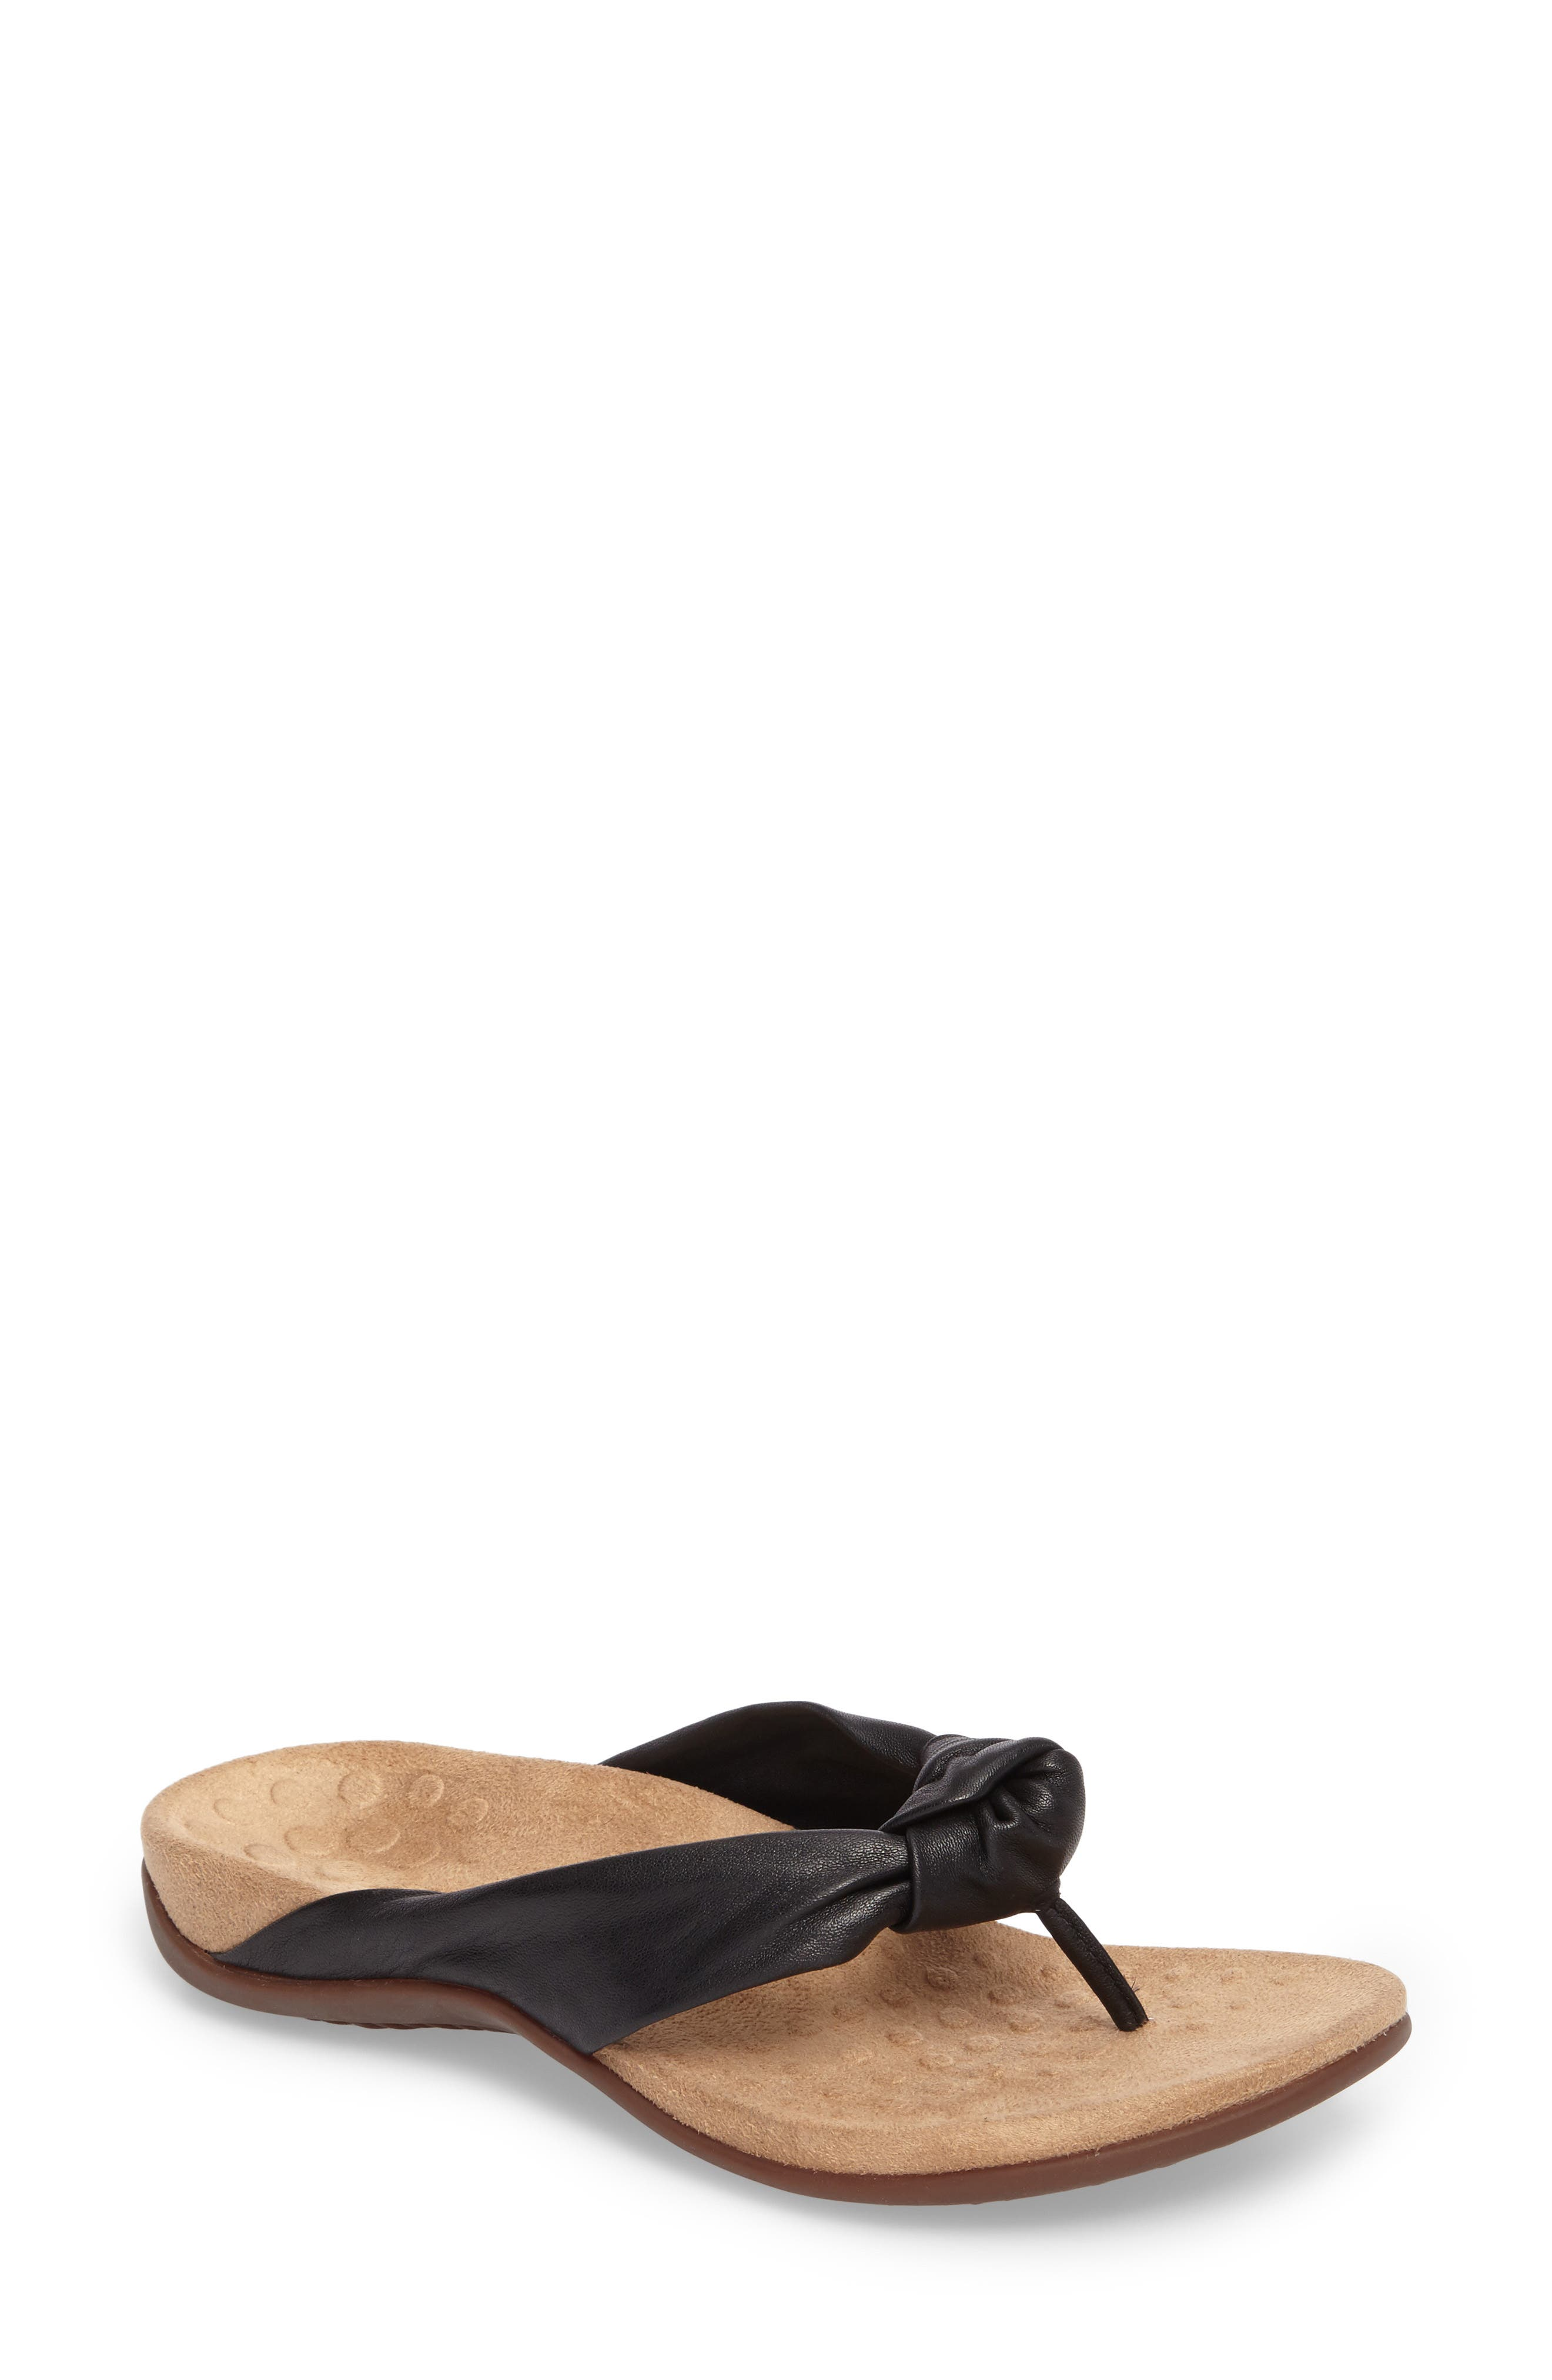 Pippa Flip Flop,                             Main thumbnail 1, color,                             BLACK LEATHER